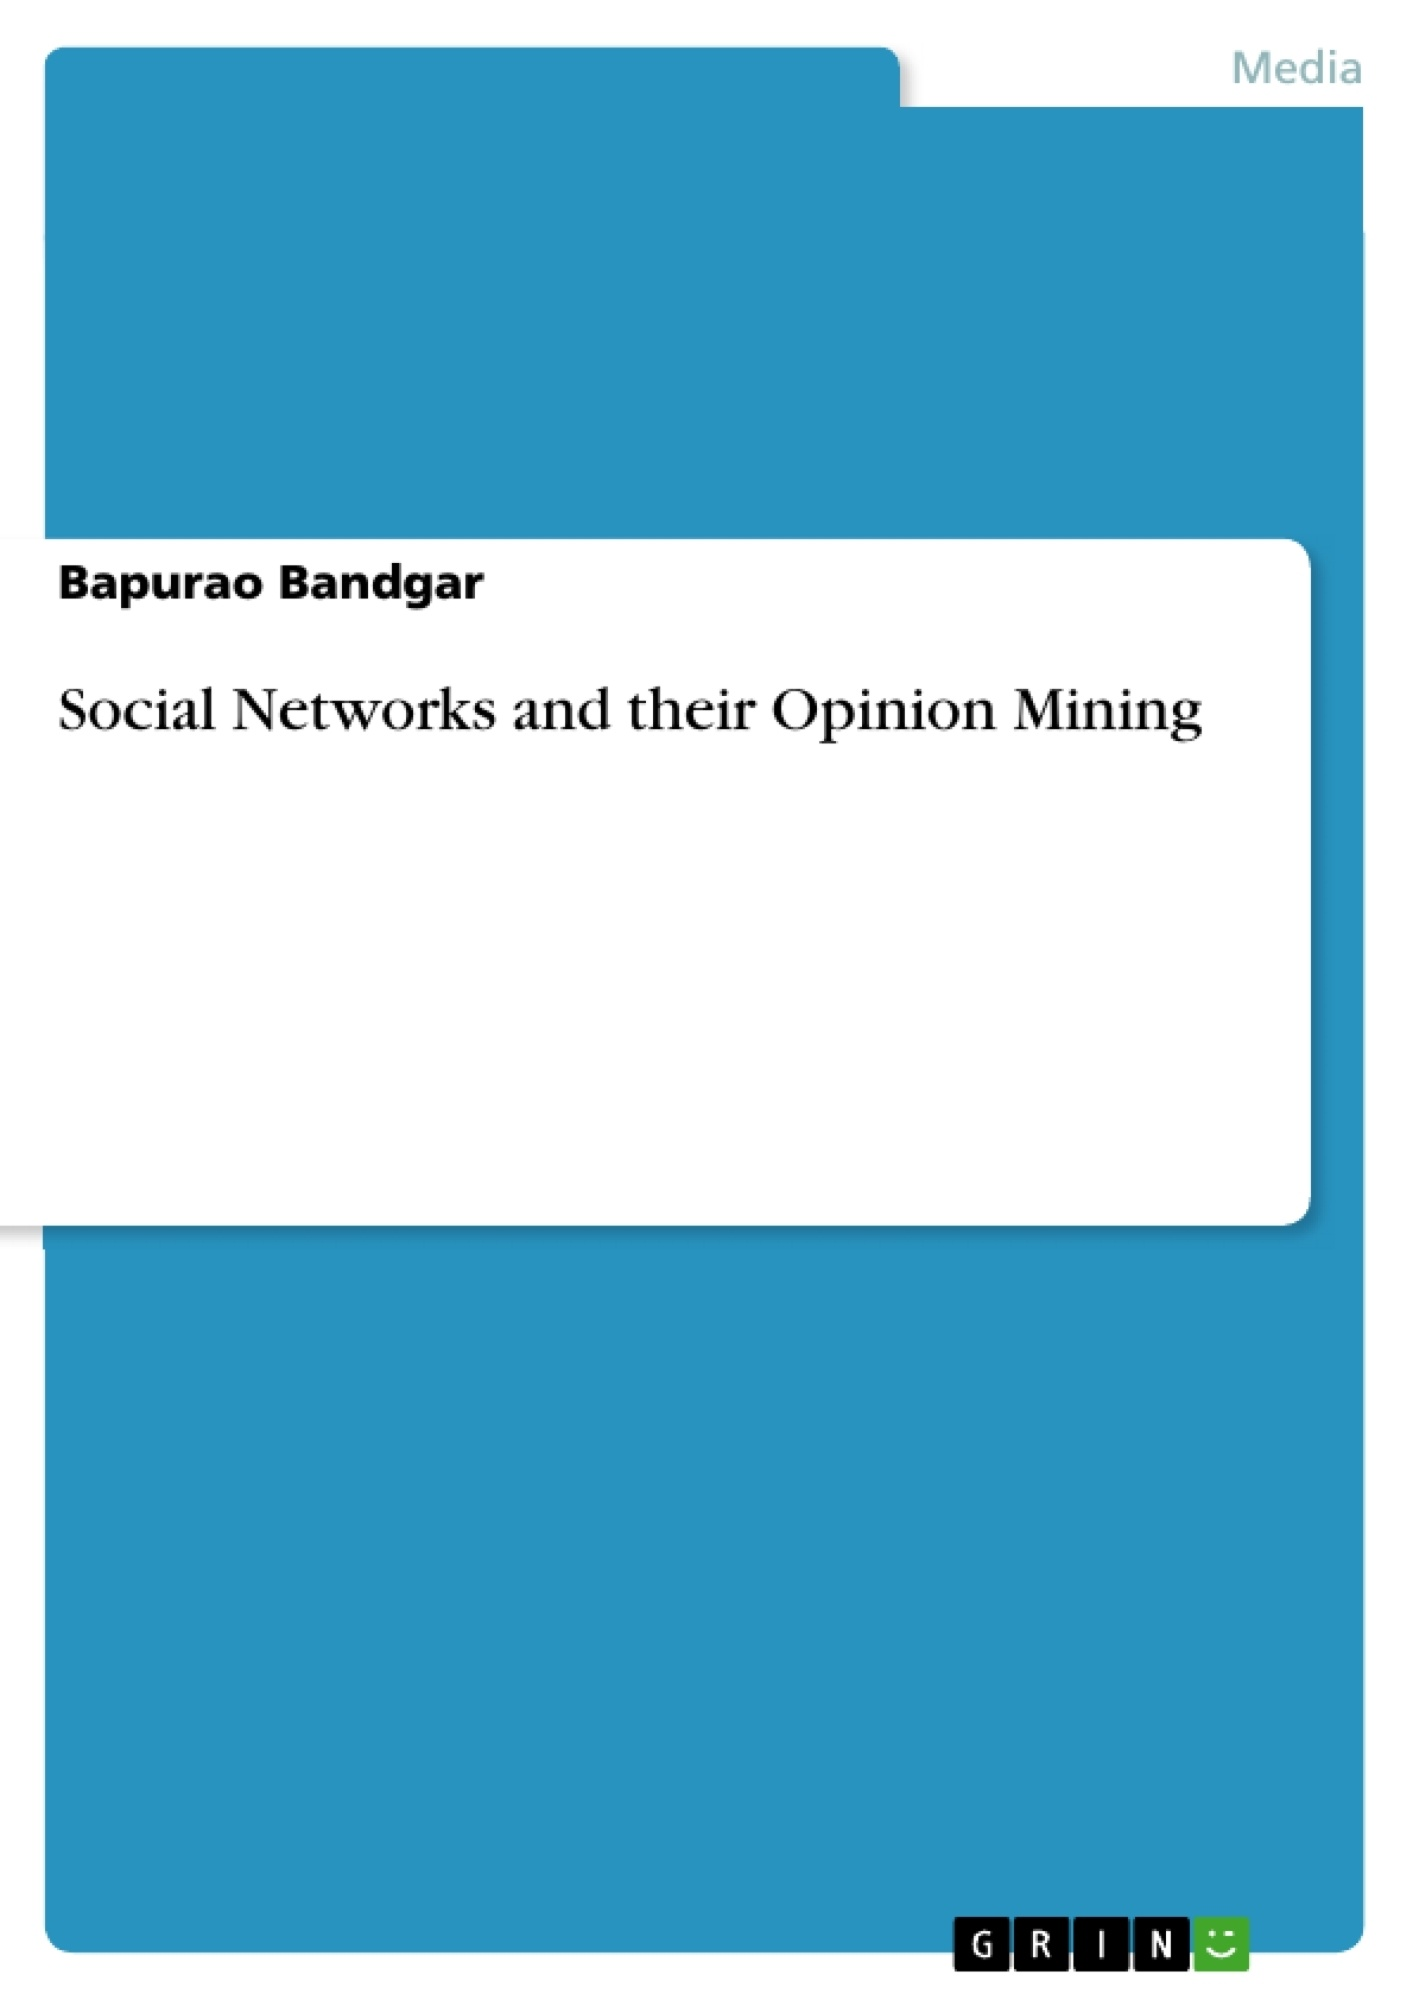 Title: Social Networks and their Opinion Mining